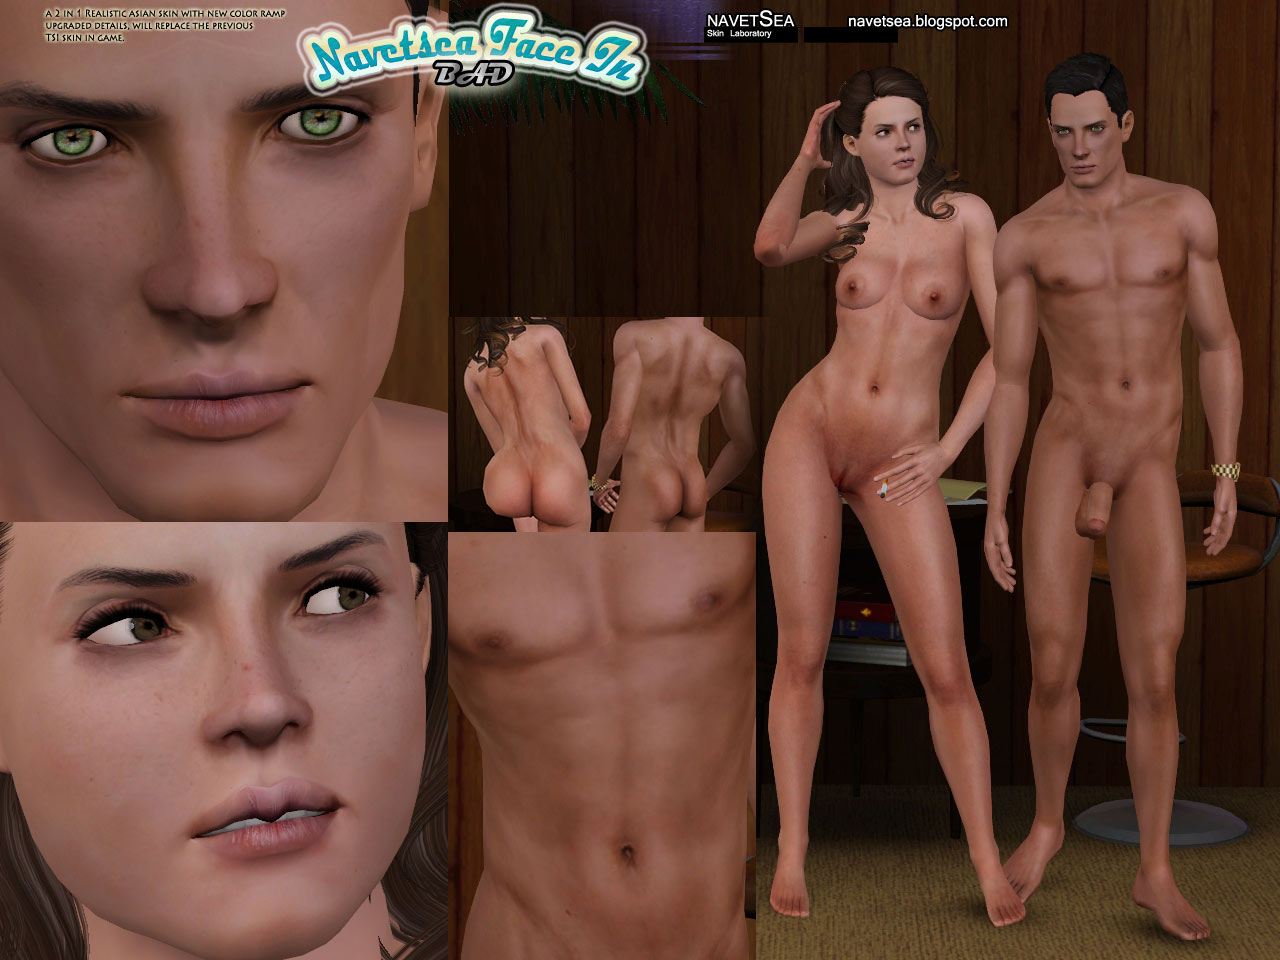 The sims 3 nude female skins porncraft movies